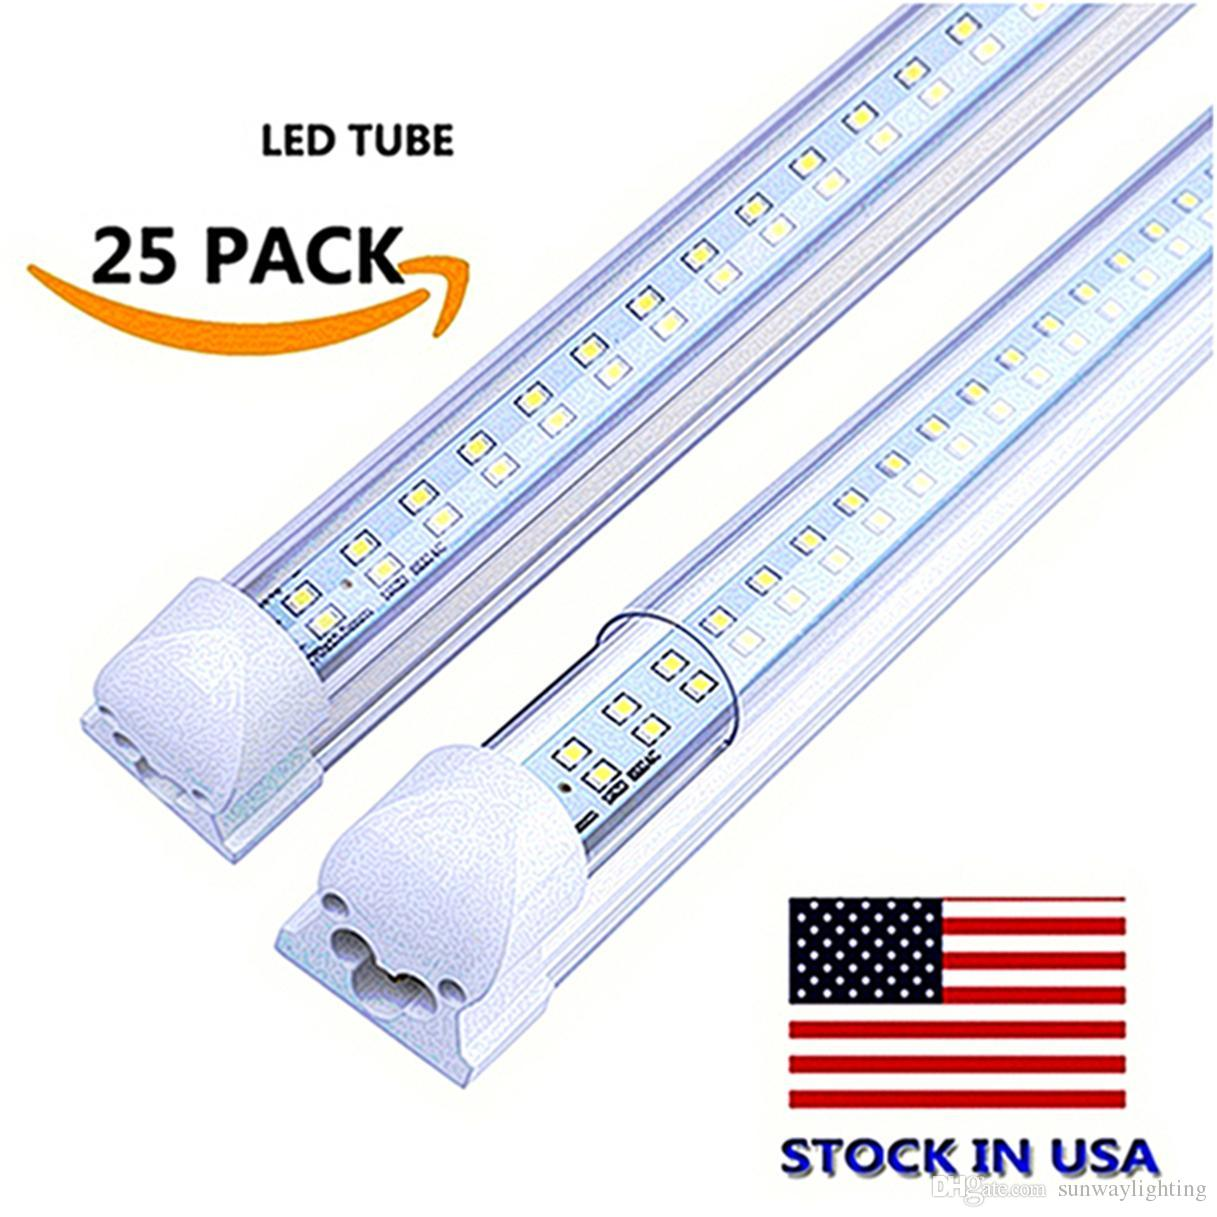 hight resolution of  row integrated led light bulbs 18w 28w 36w smd2835 led lights 85 265v fluorescent lighting lamps led tube light bulbs led tube light circuit diagram